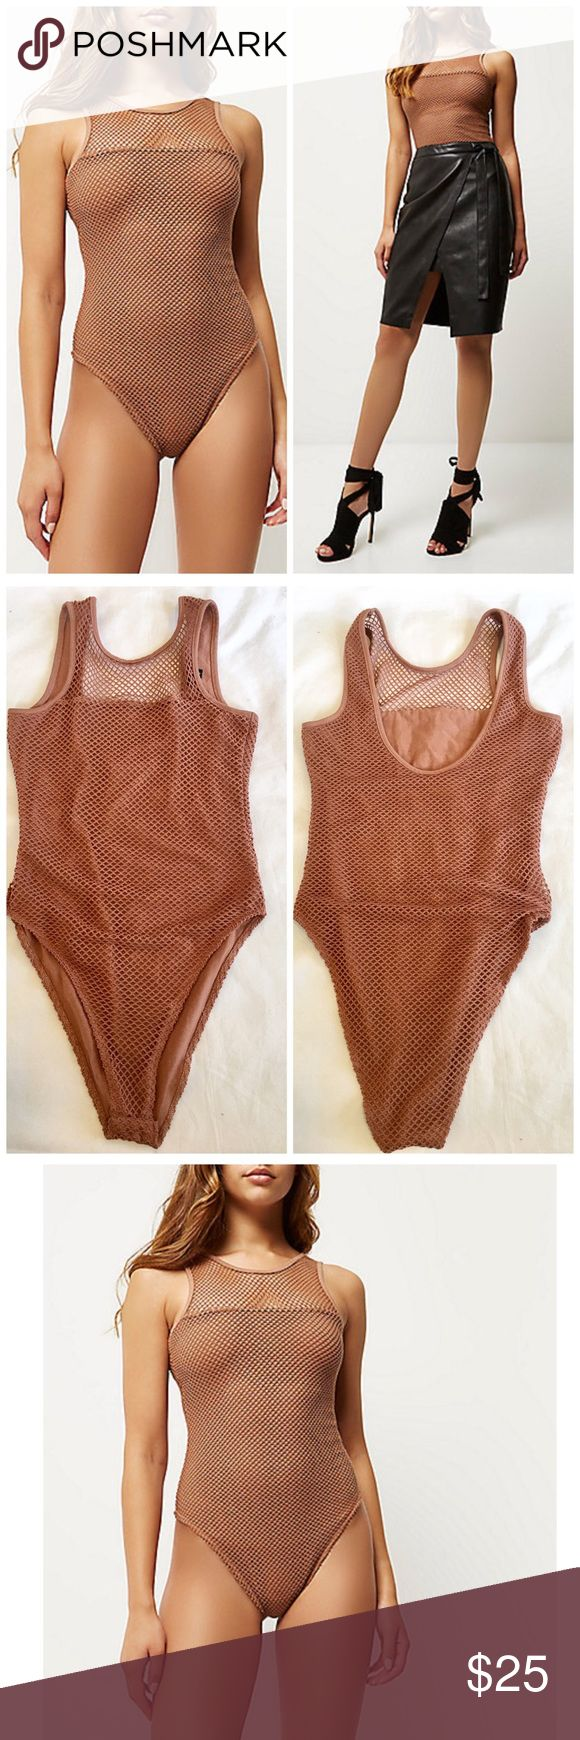 RIVER ISLAND BROWN MESH BODYSUIT TOP US 2 UK 6 new RIVER ISLAND MESH BODYSUIT $44 retail price brand new without tag inner label marked perfect condition. DETAILS: size US 2 UK 6. Brown mesh bodysuit, partially lined, high cut leg, snap closure. Love this color!!! River Island Tops Tank Tops